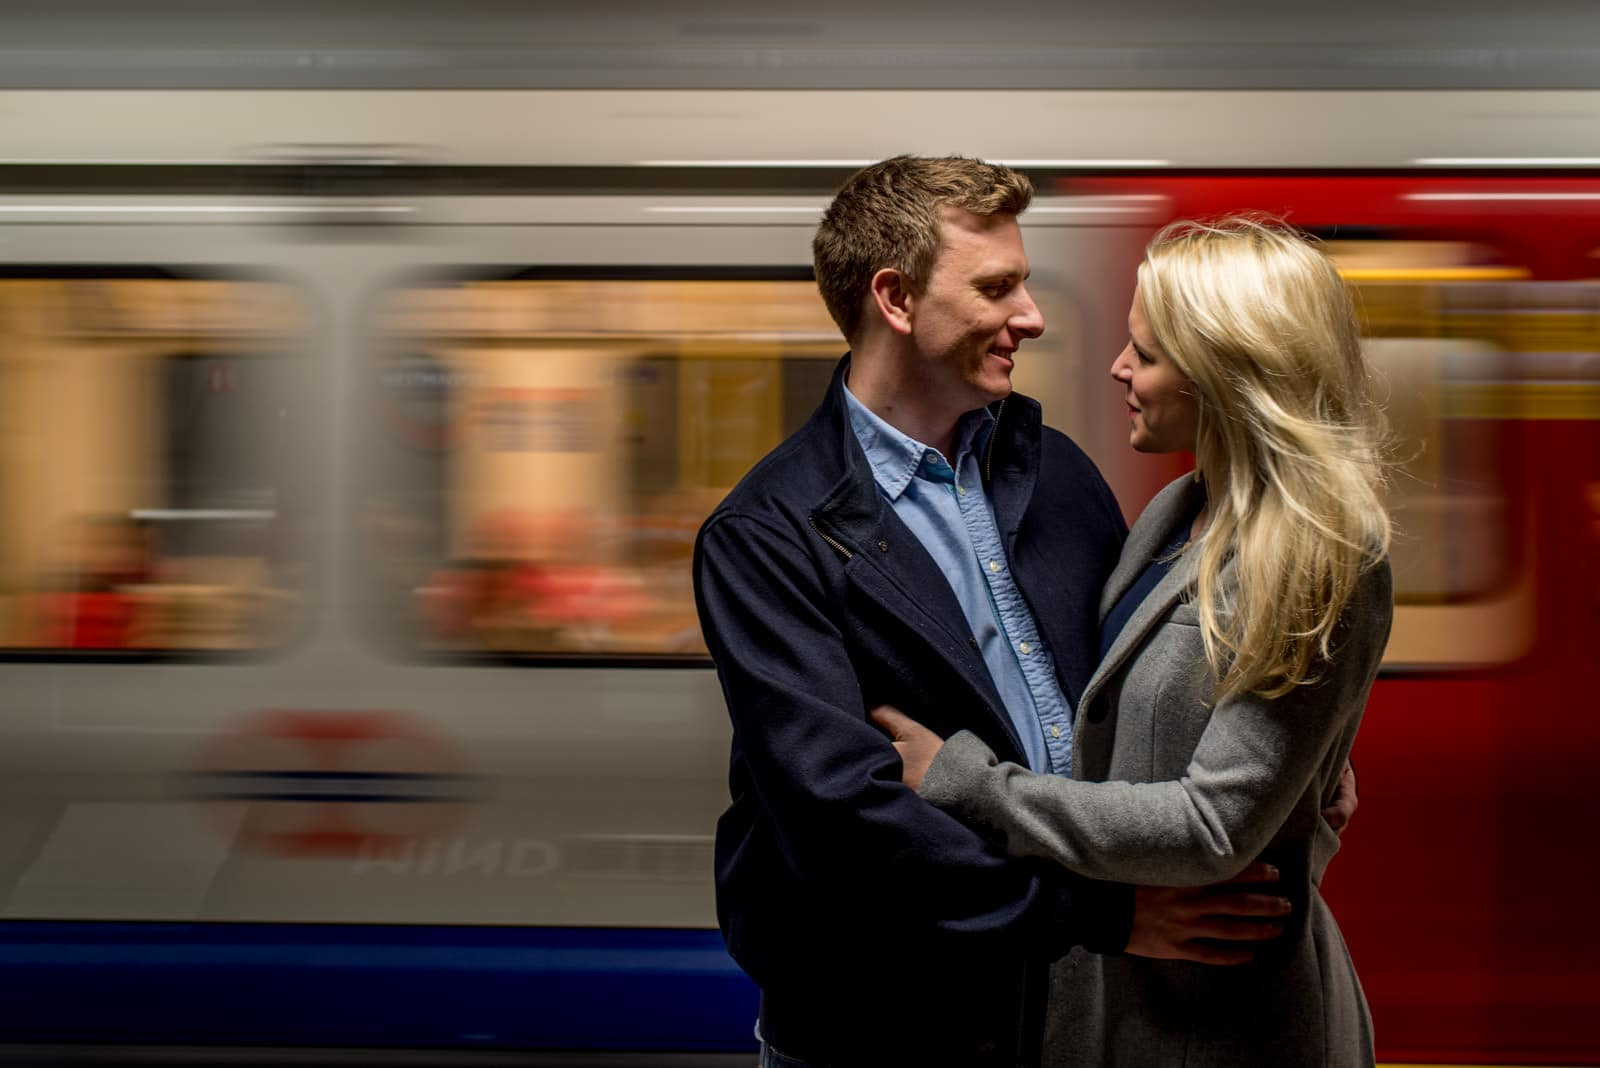 Engagement photos on the London Underground